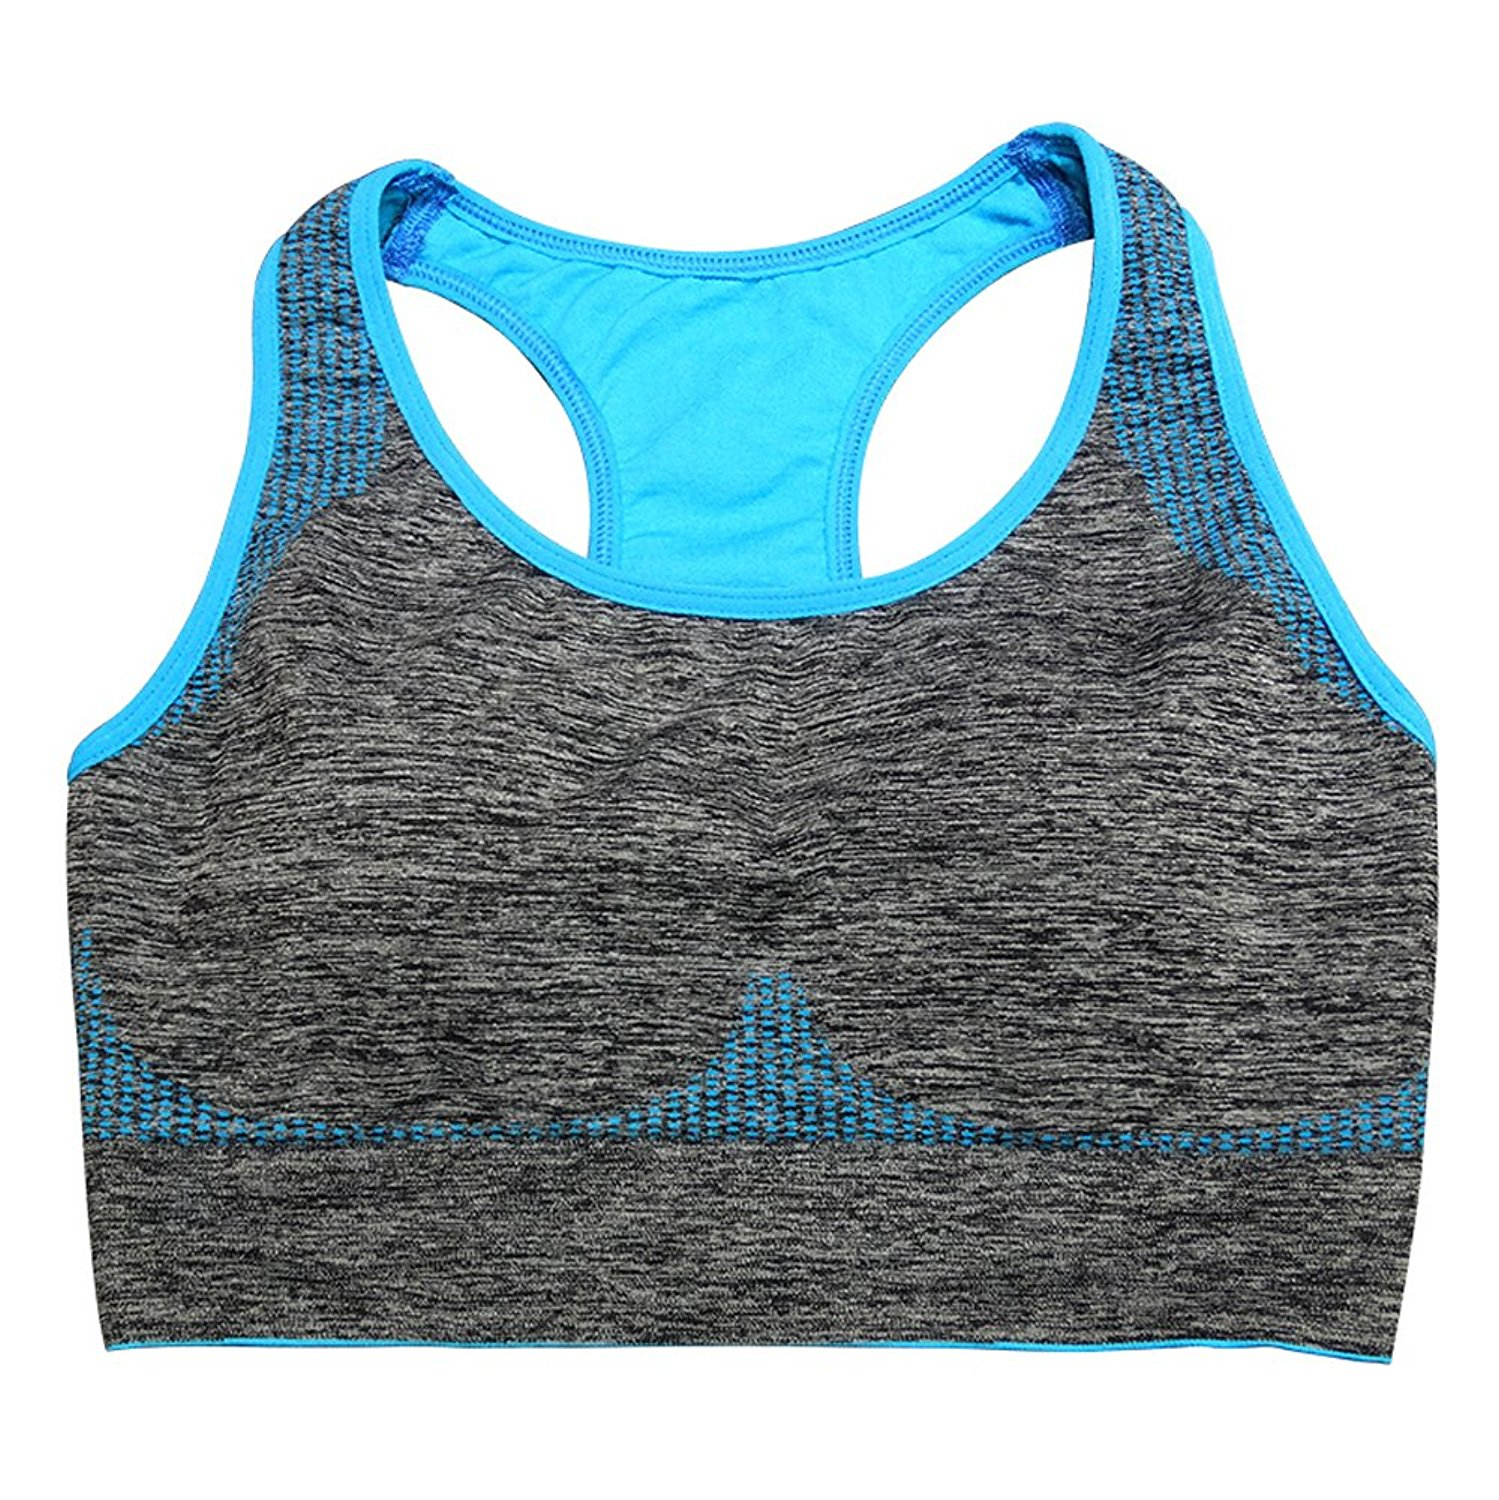 Cheap Sports Bra Pads, find Sports Bra Pads deals on line at Alibaba.com